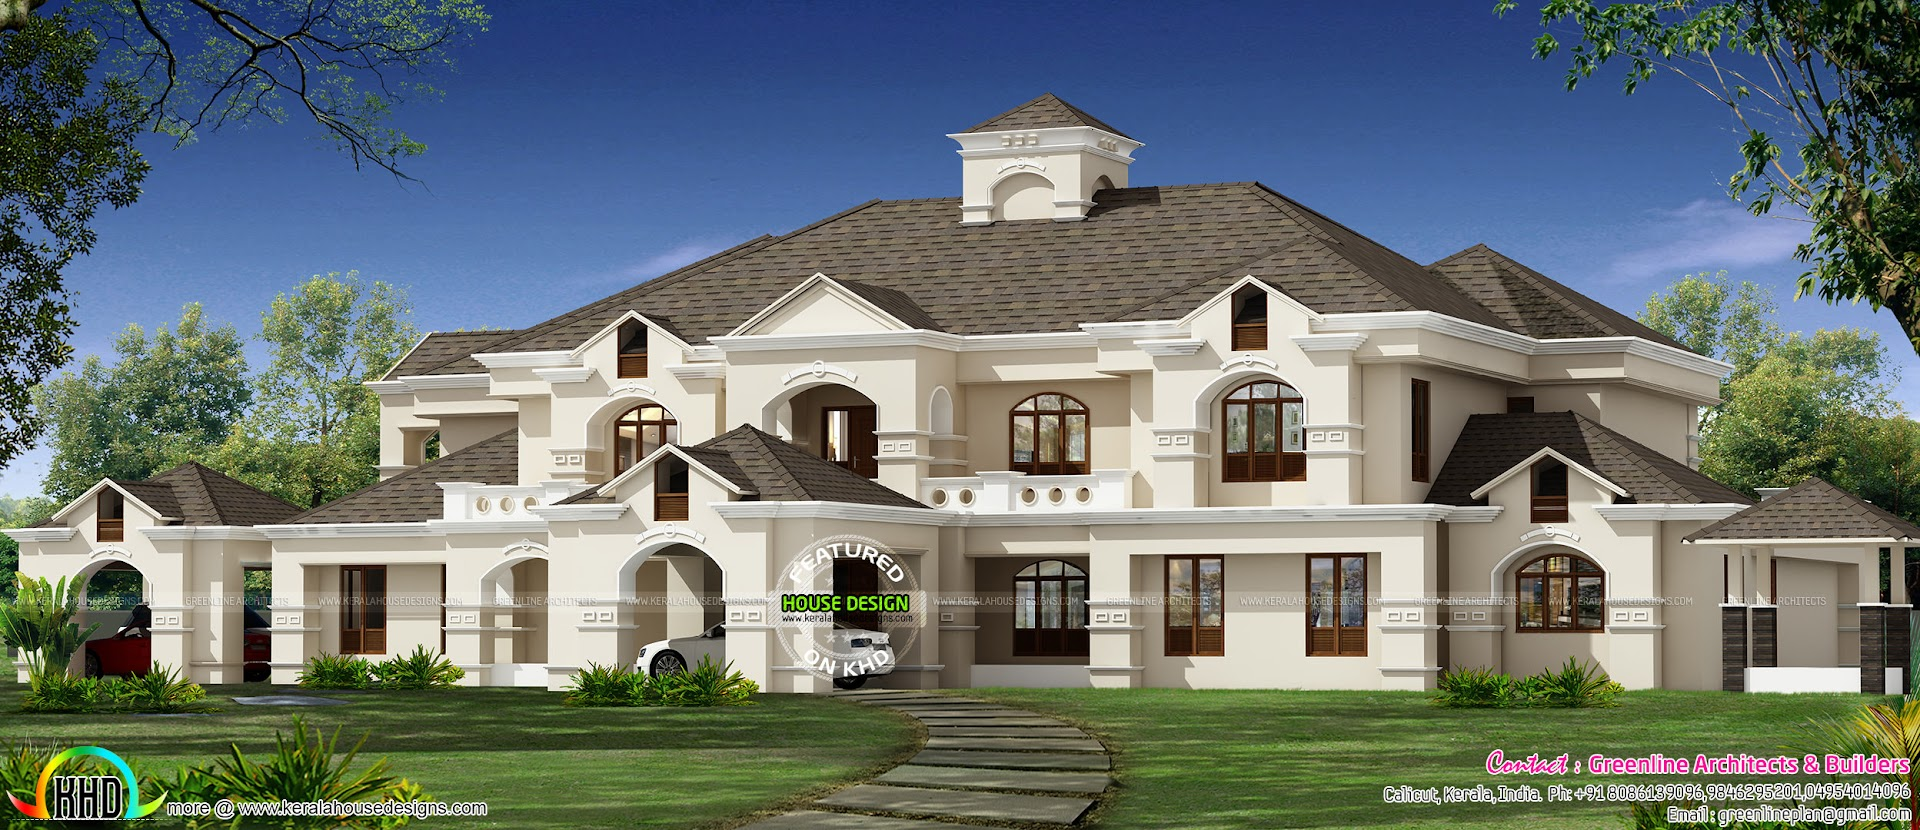 Colonial luxury house plans 28 images traditional for Colonial luxury house plans